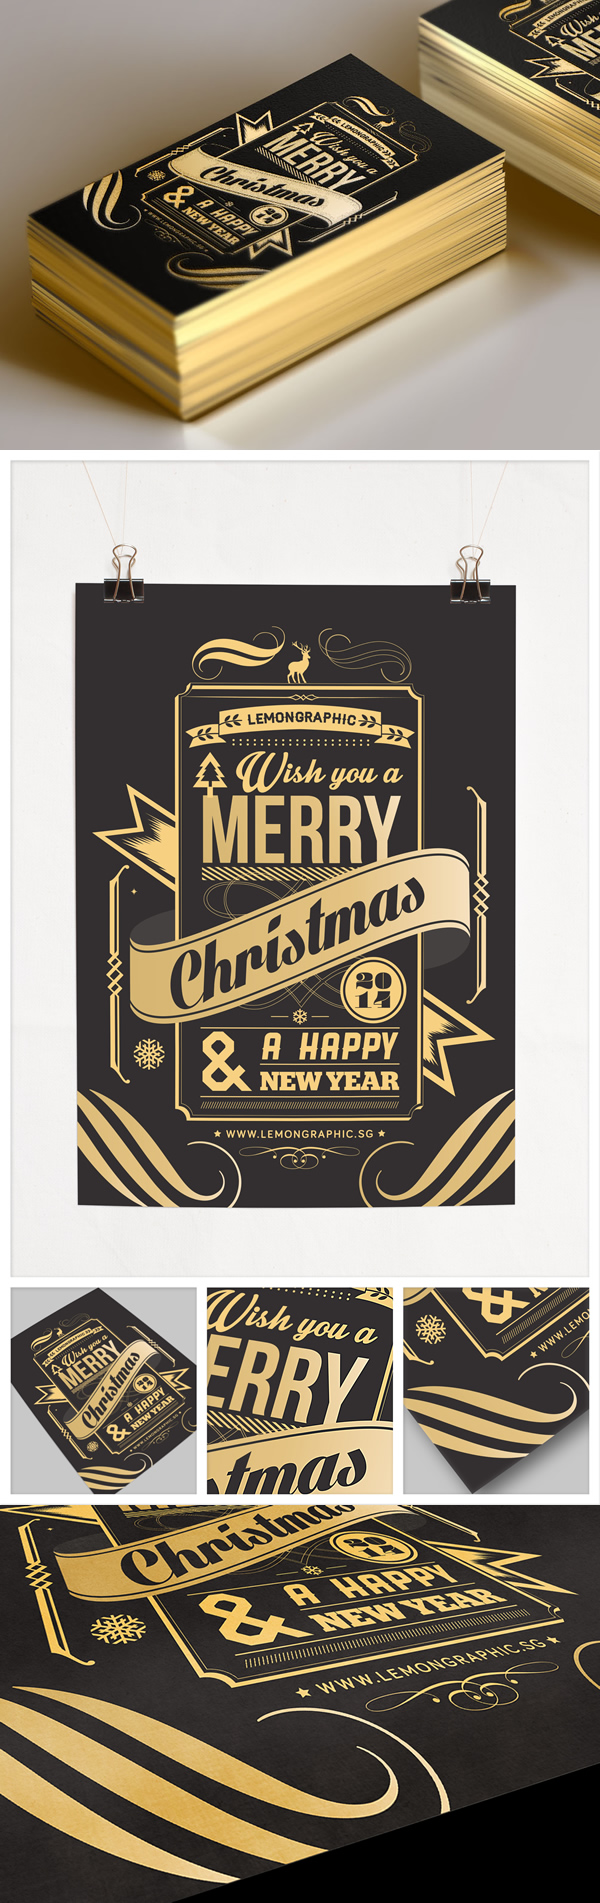 Merry-christmas-card-gold-hotstamp-2014-02